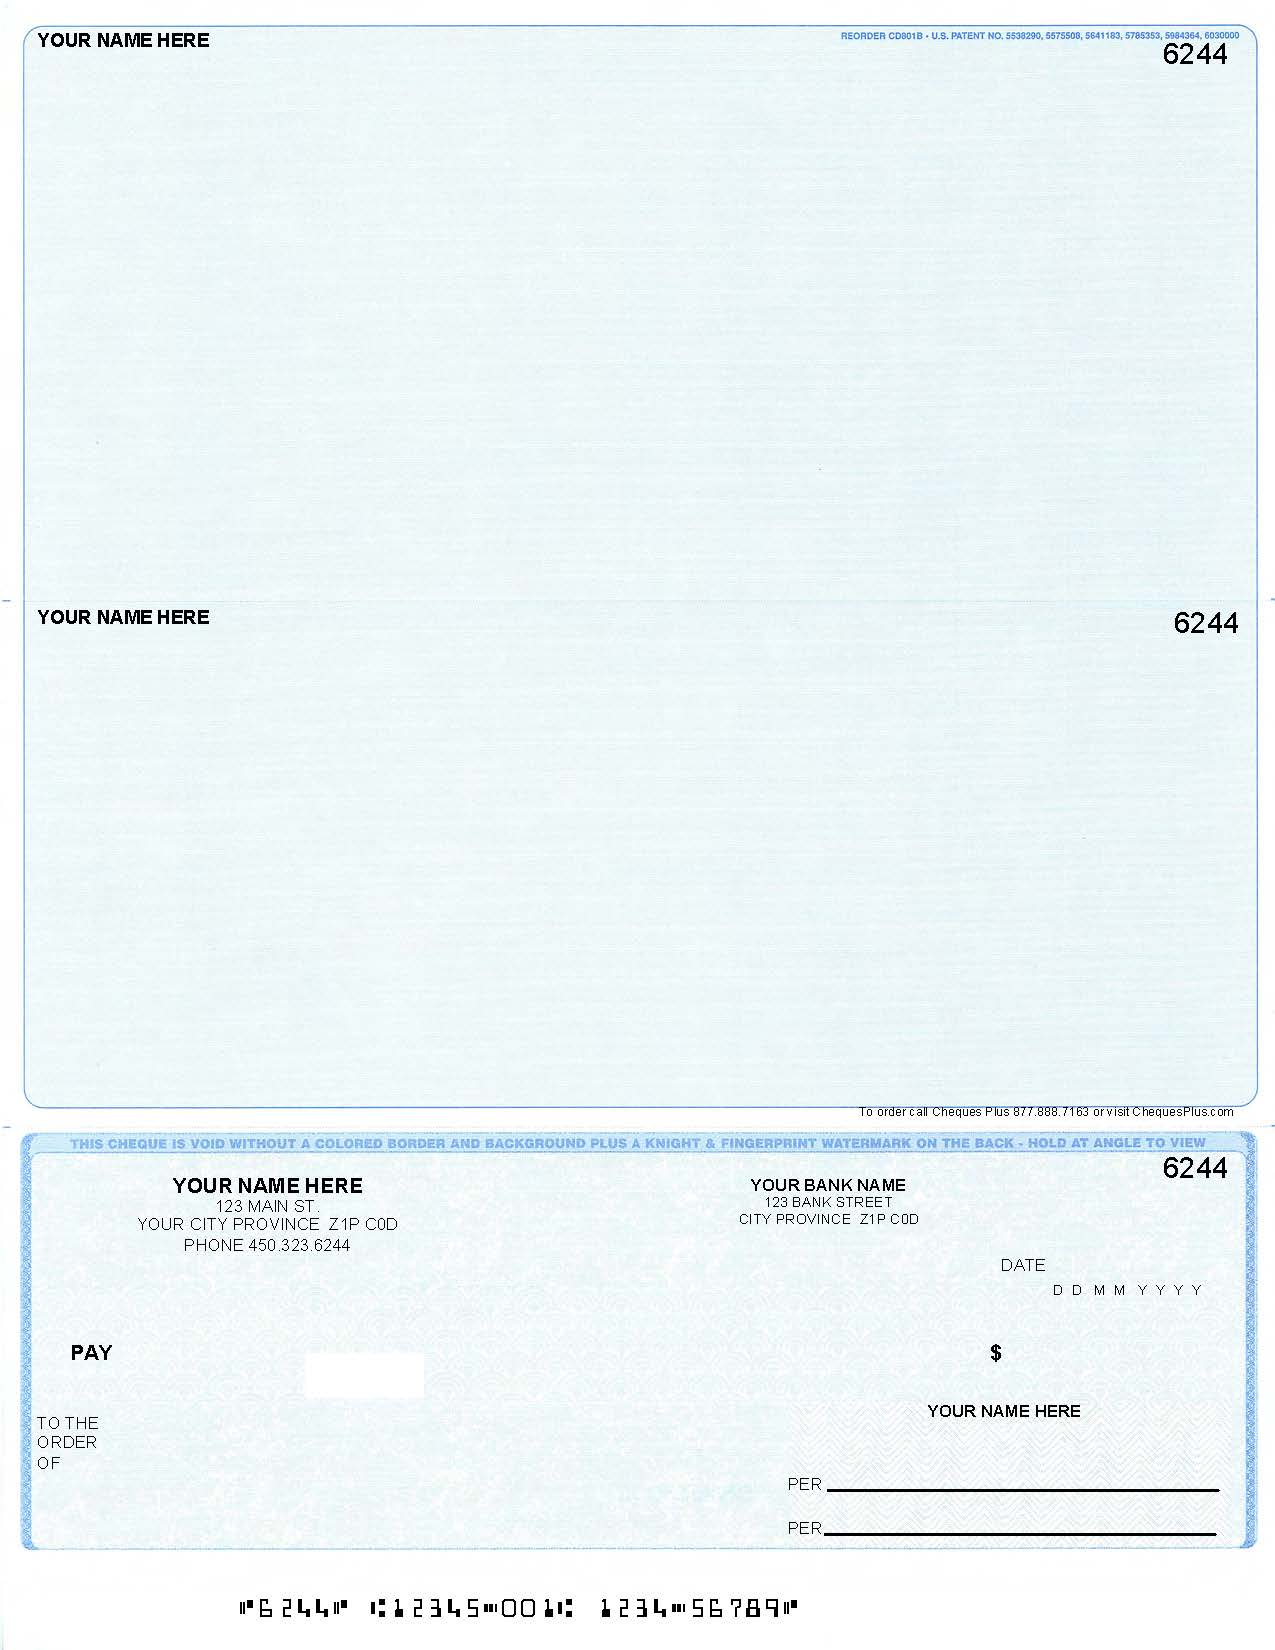 Computer Cheque On Bottom